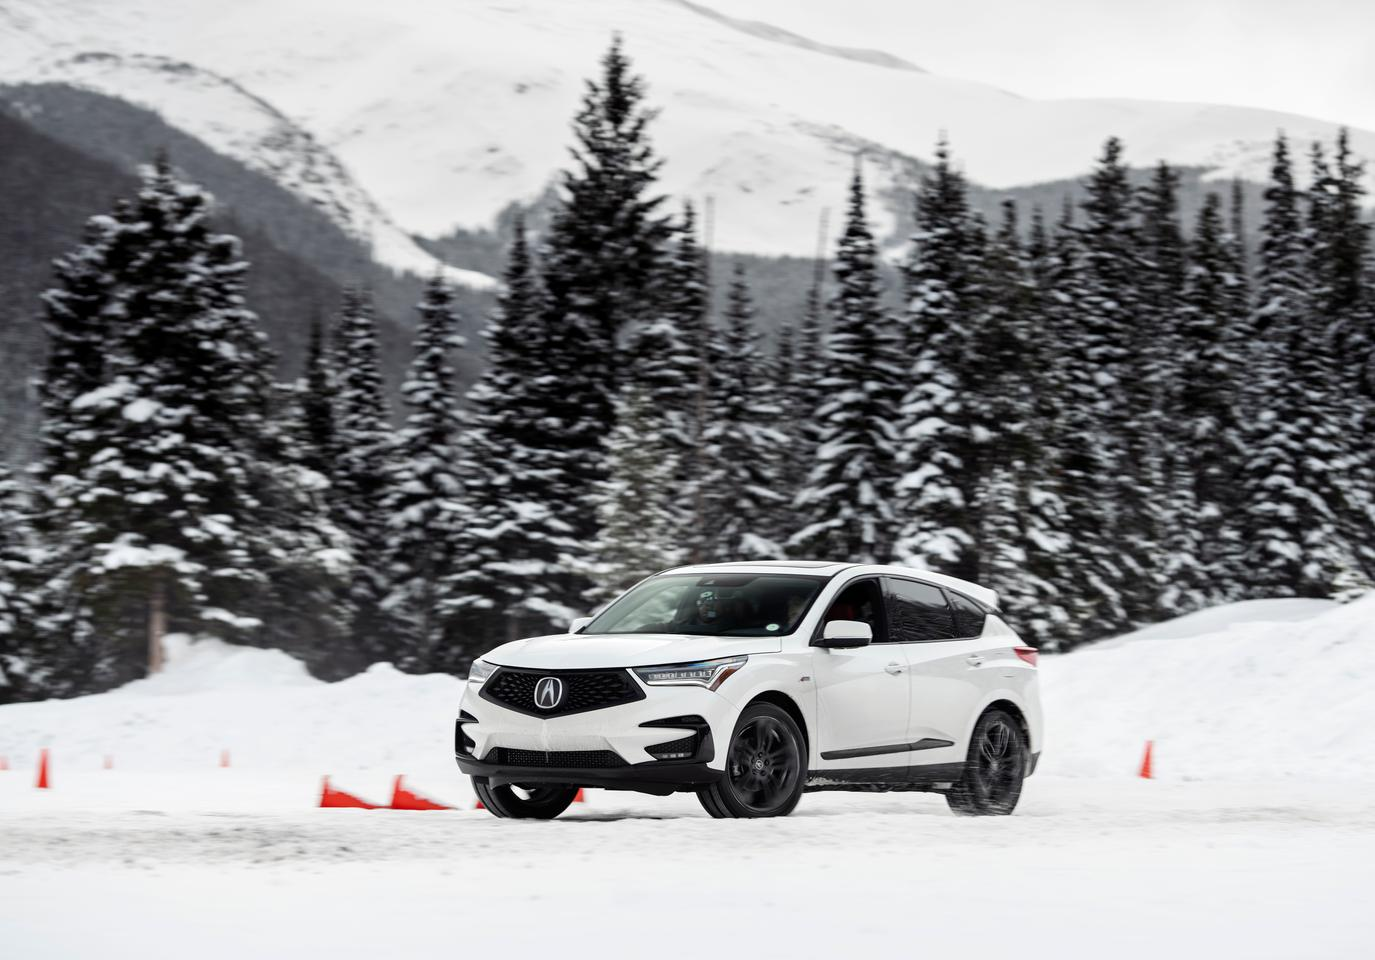 The 2020 Acura RDX is a very well-done vehicle and is both fun and extremely safe on the snow and ice